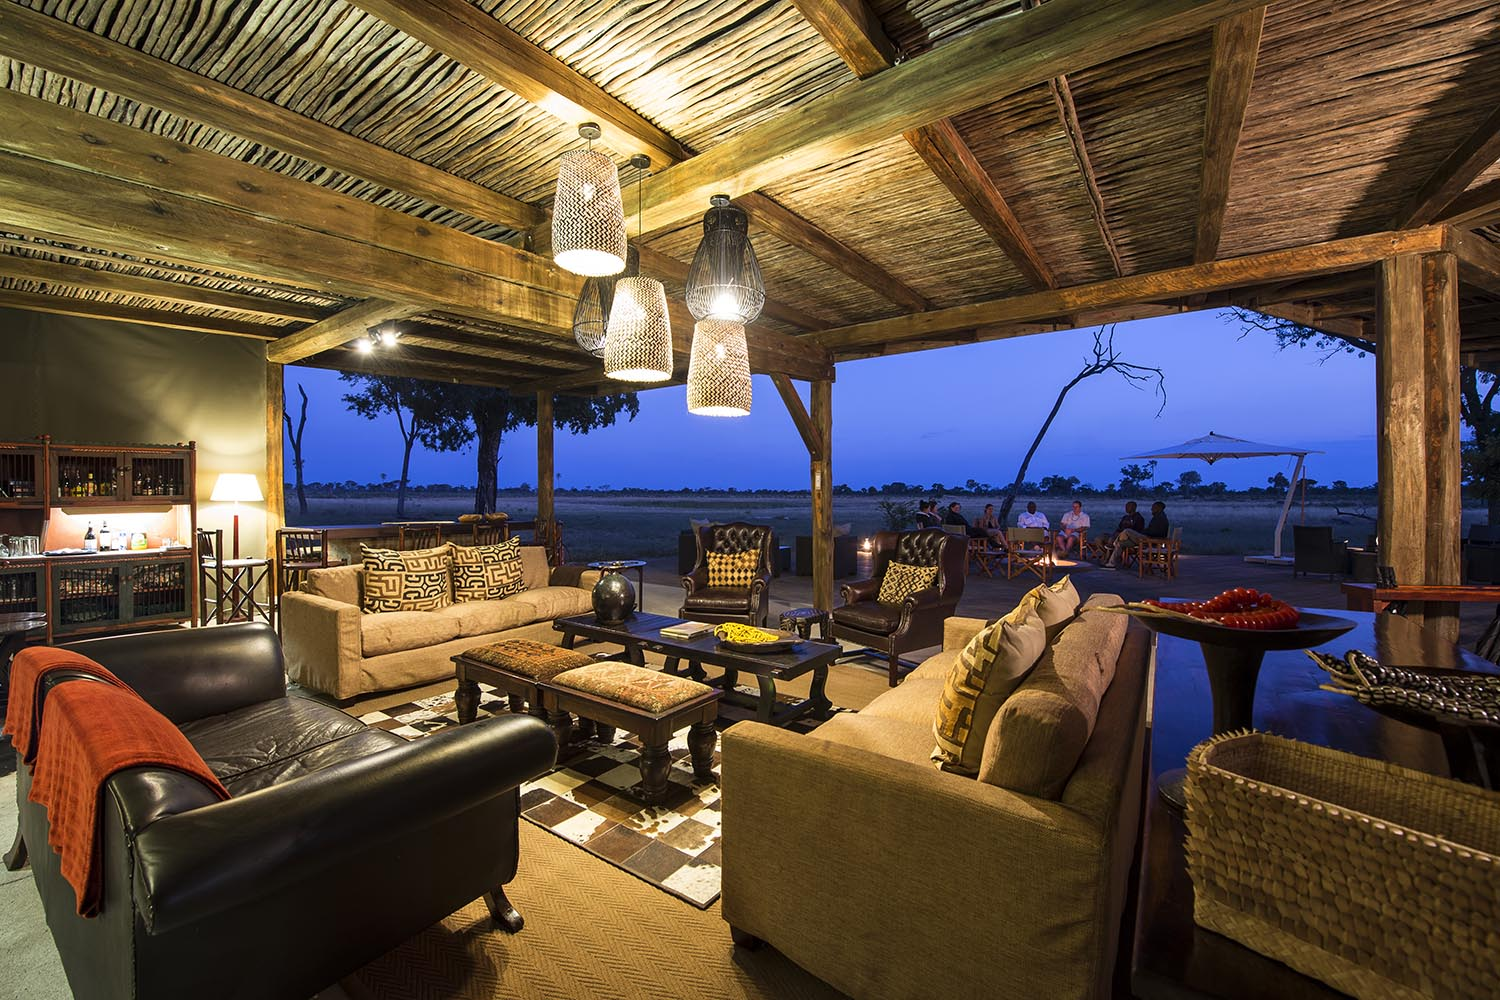 davisons camp hwange-national-park-zimbabwe-lodges-wilderness-safaris-main-area-lounge